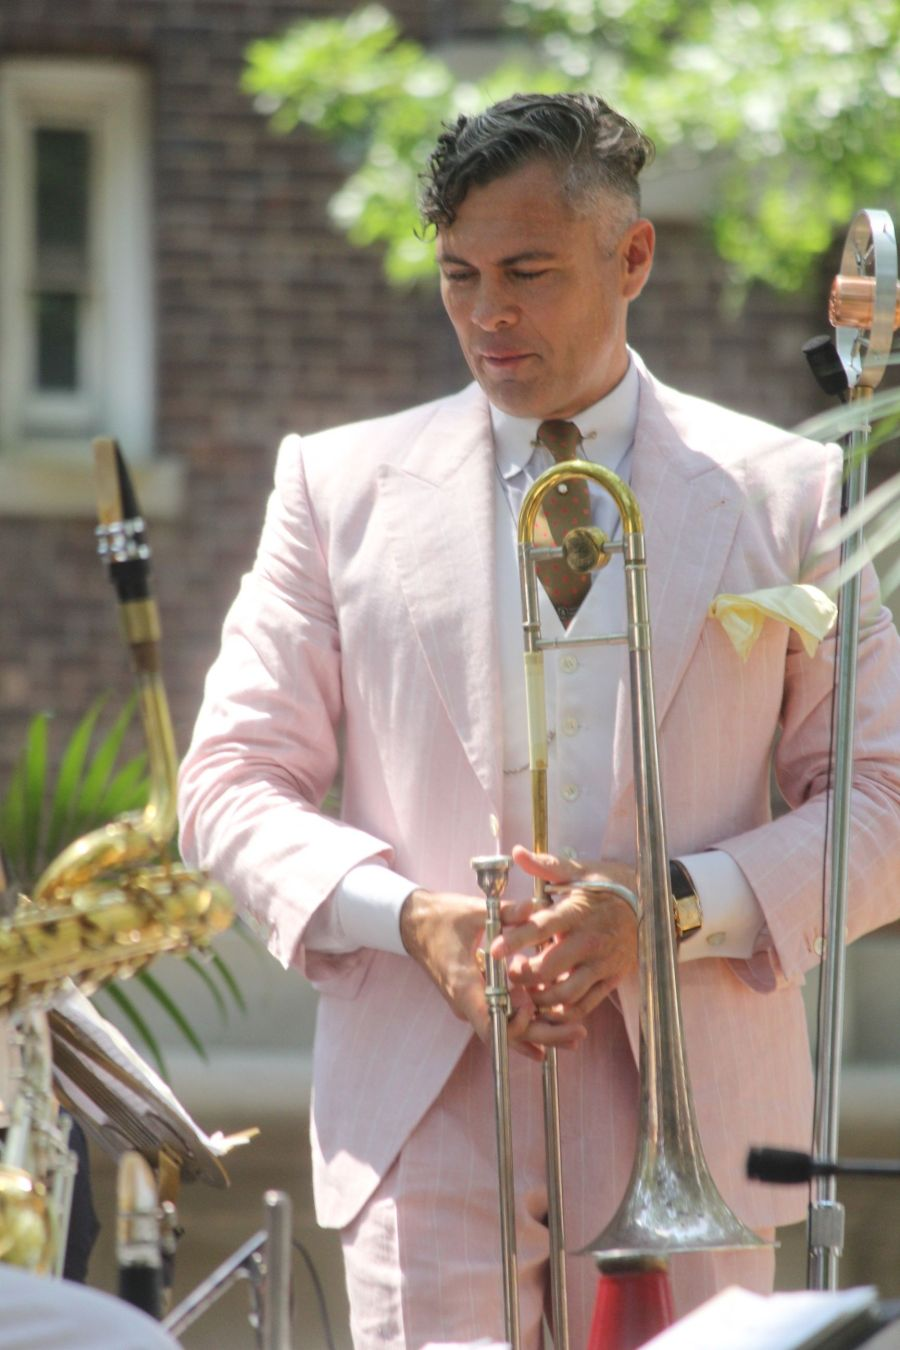 new york city governor's island jazz age lawn party august 16 michael aranella